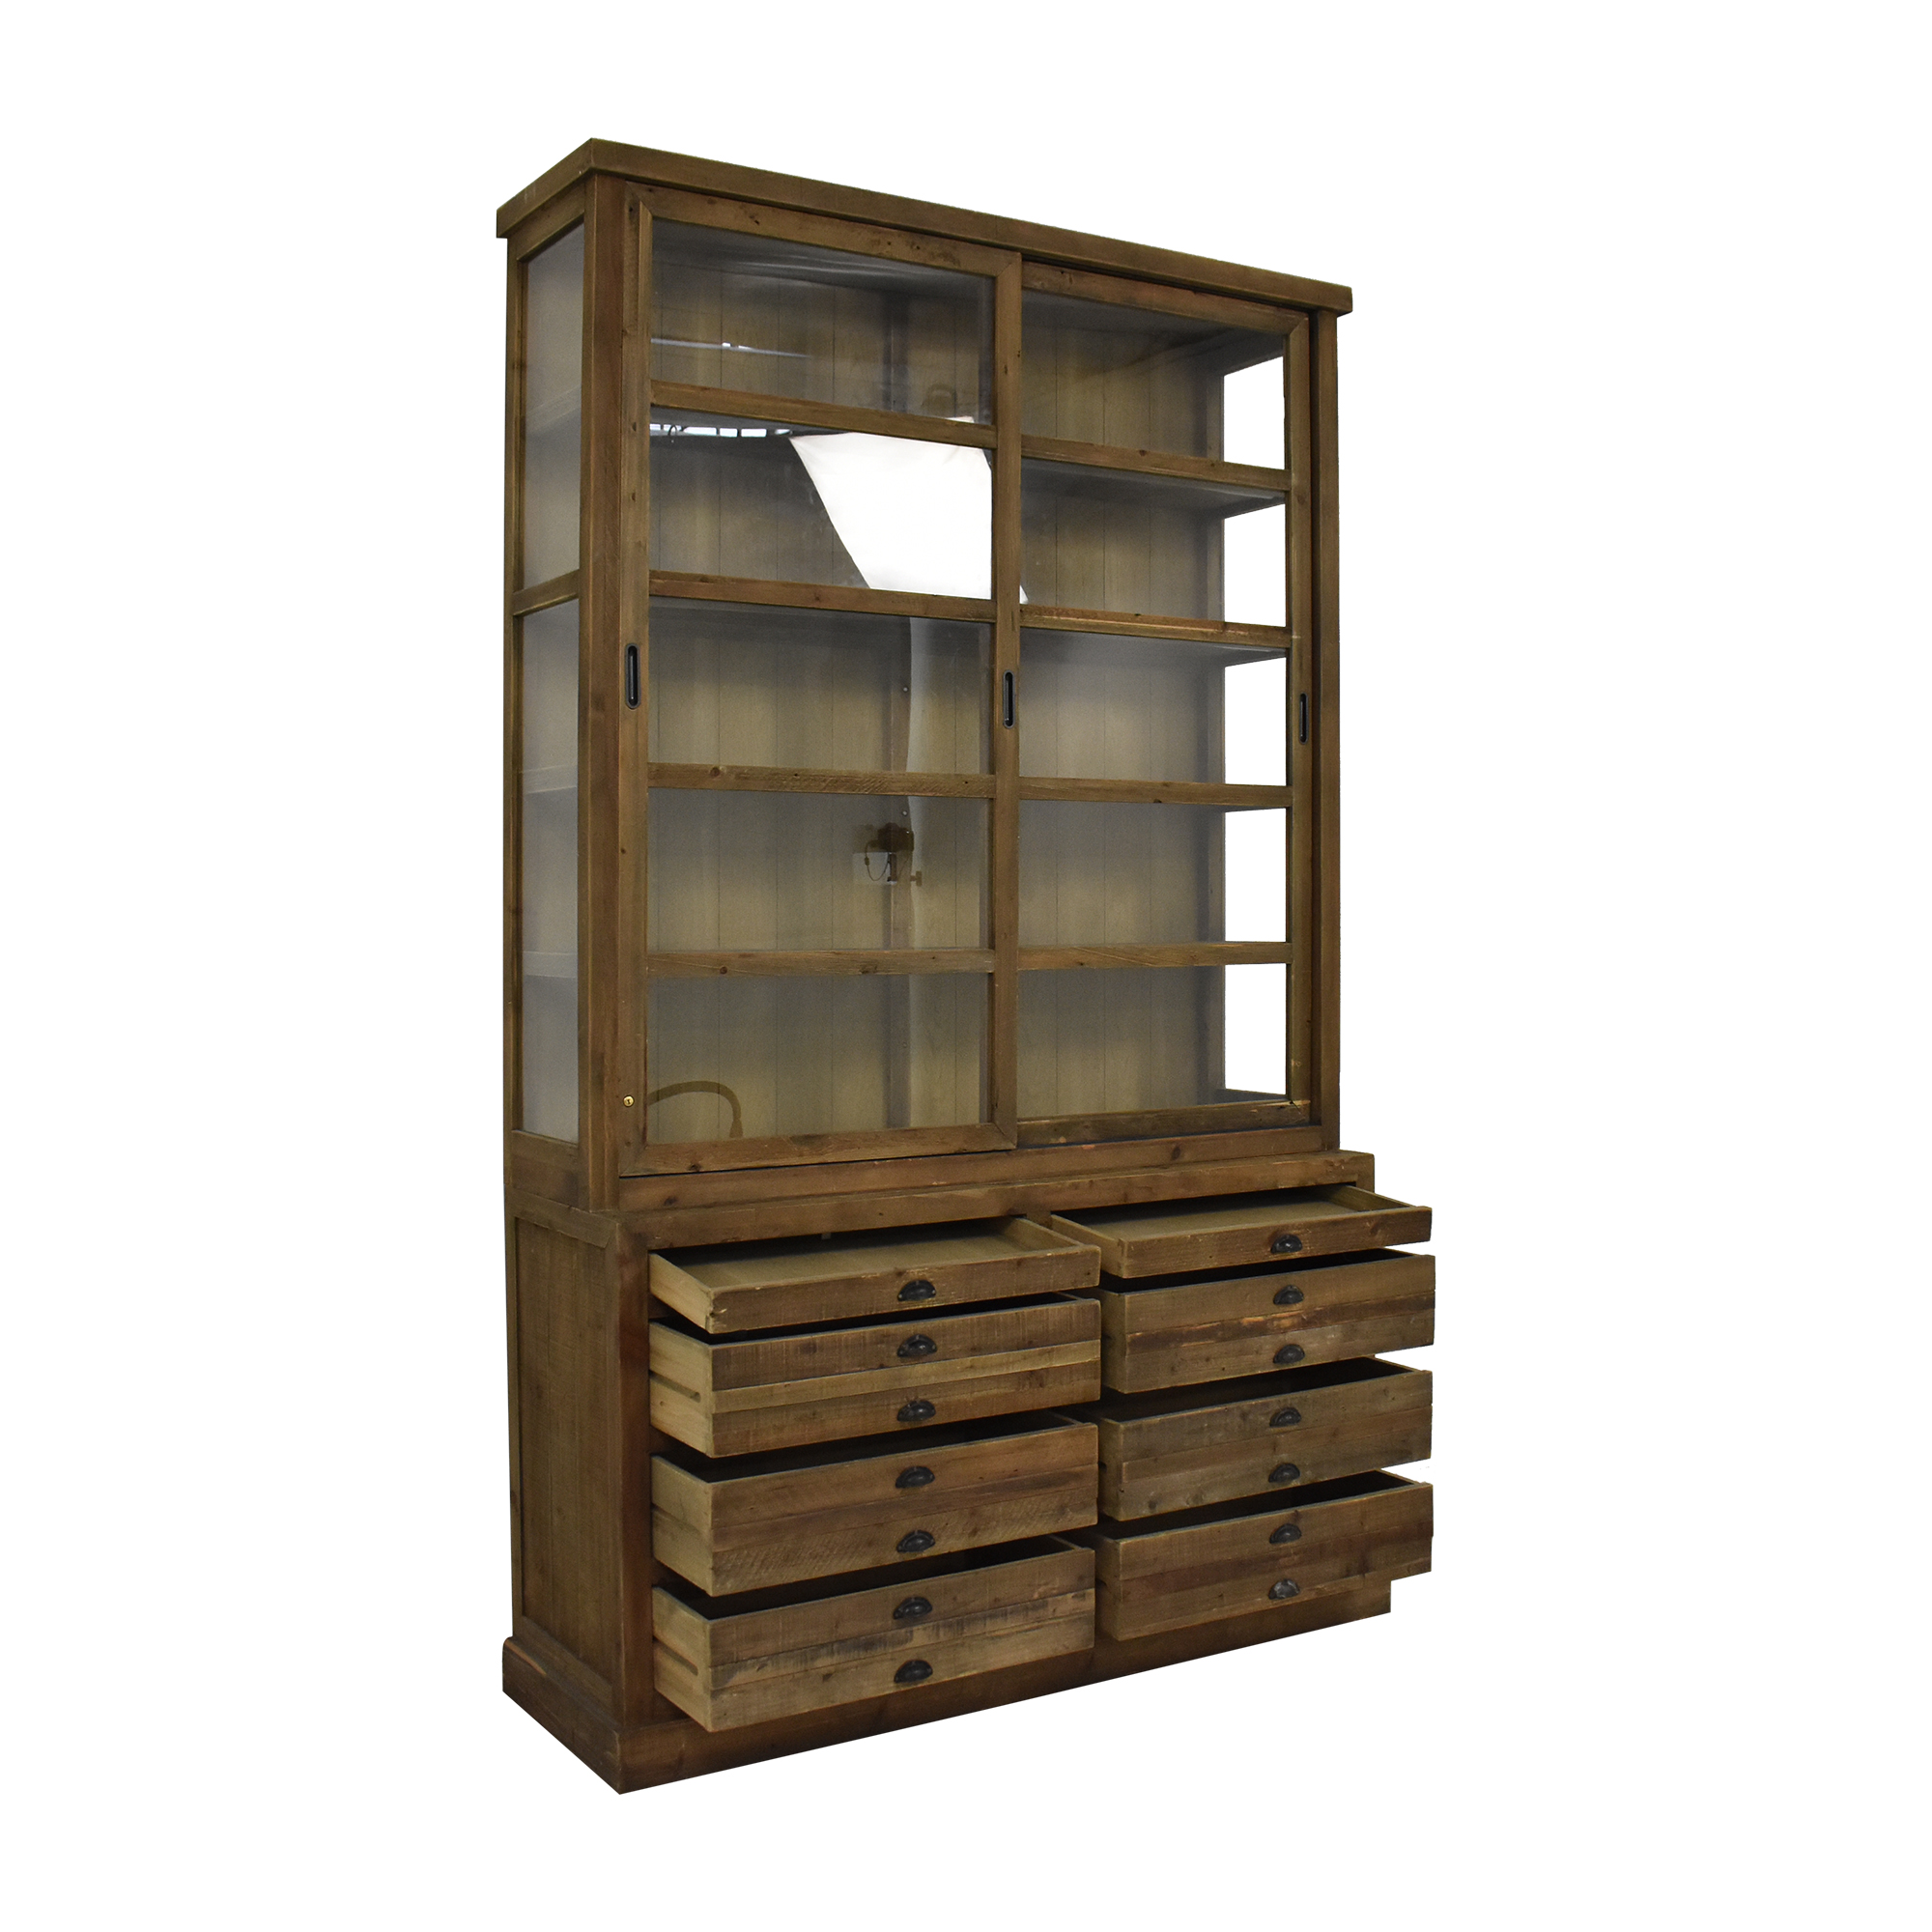 Restoration Hardware Restoration Hardware Printmaker's Sideboard and Hutch price